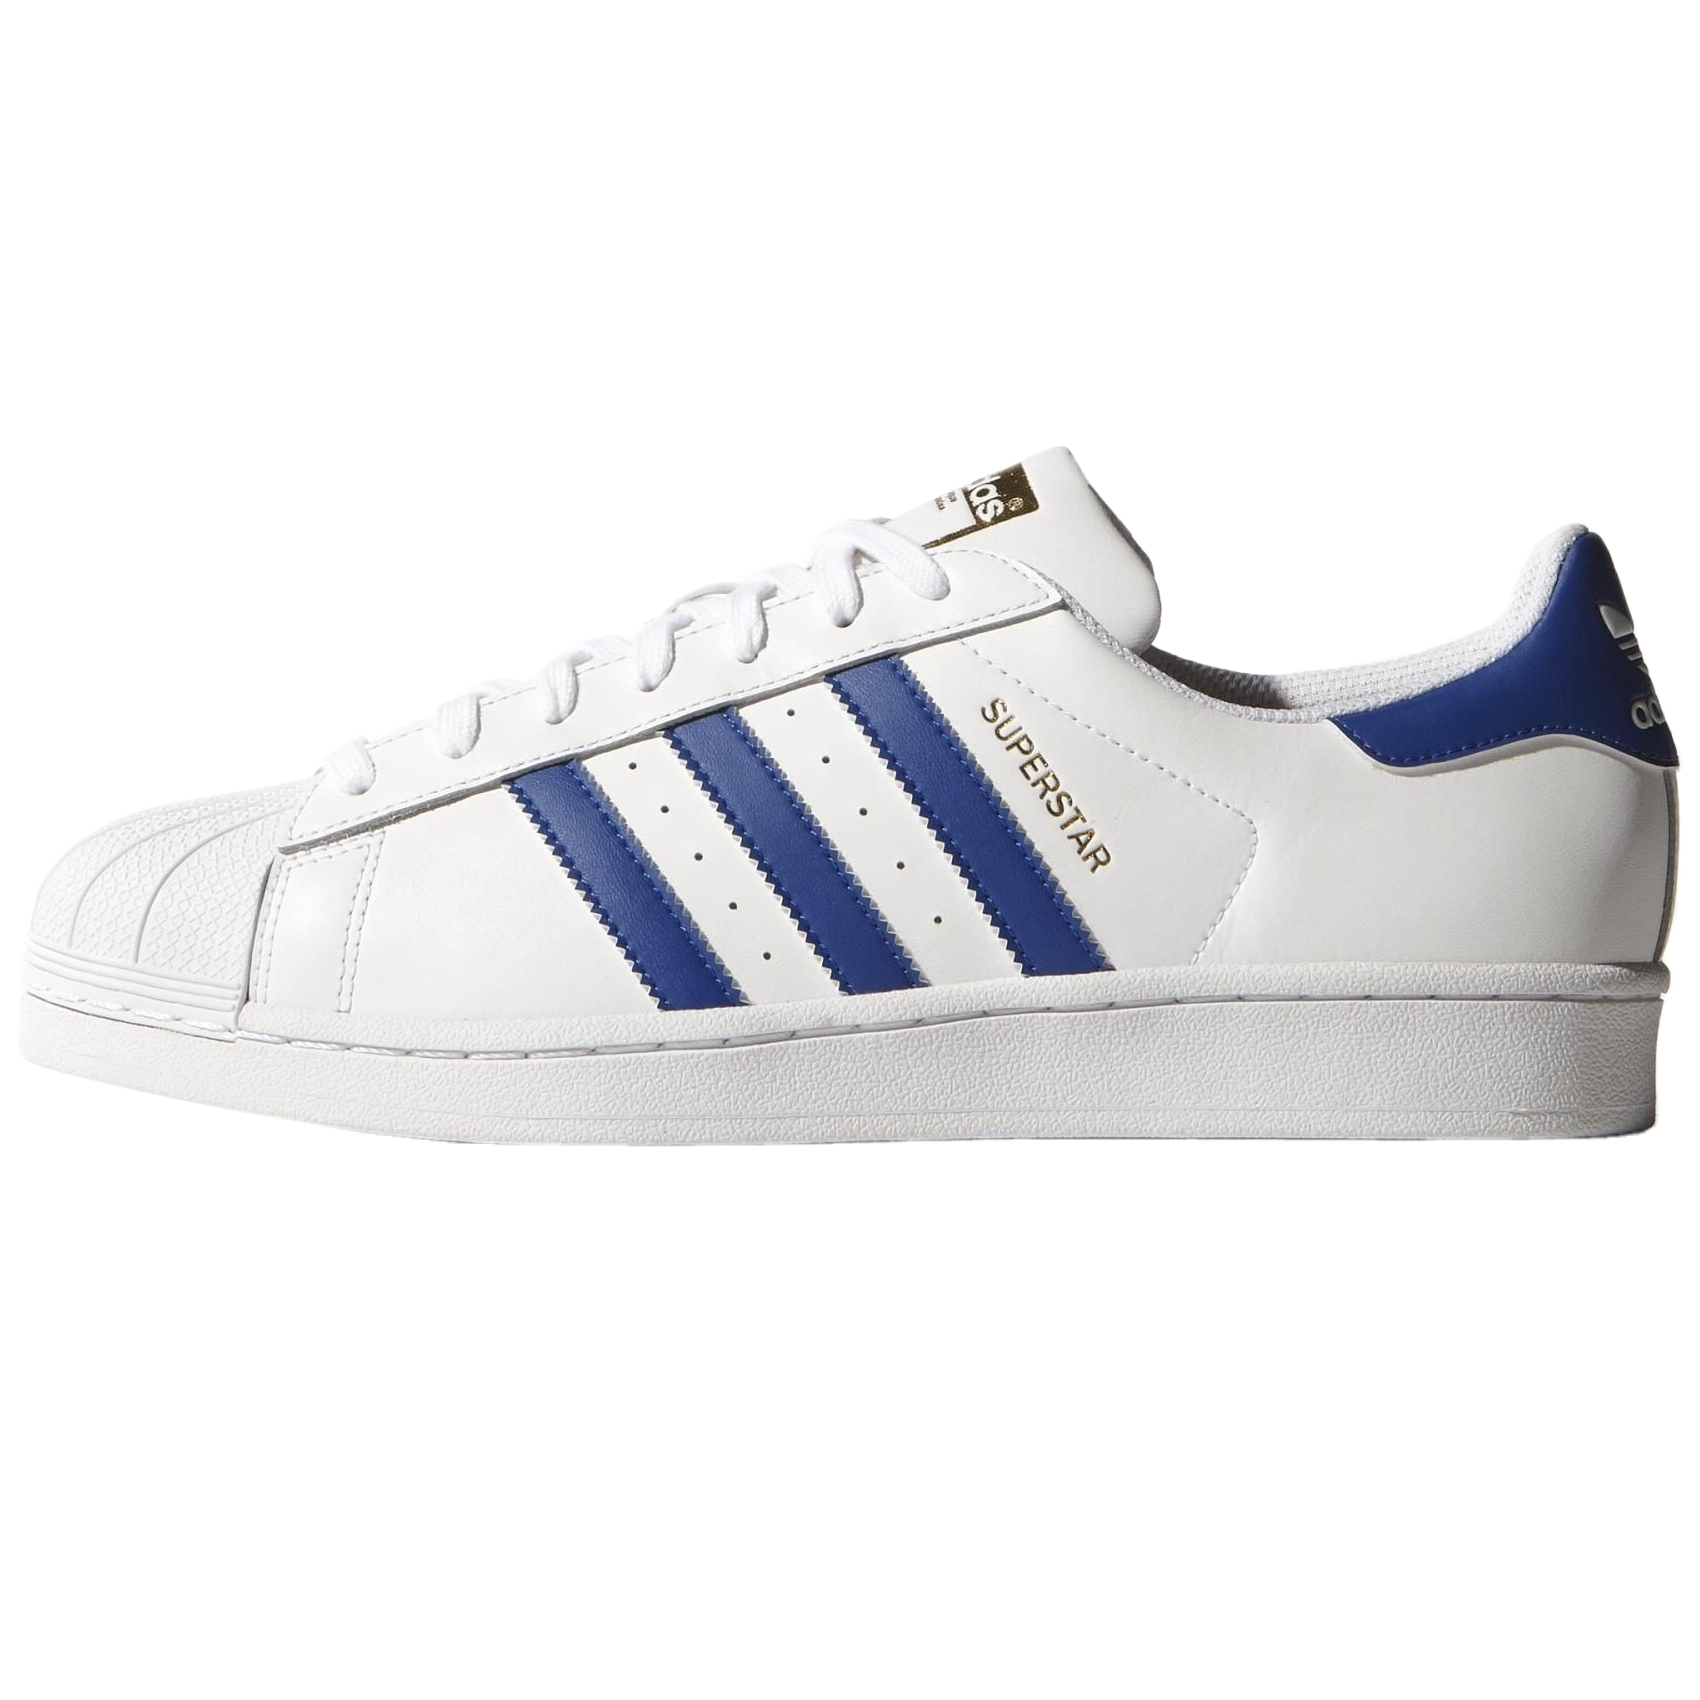 on sale 9e2b1 367ed ... ADIDAS ORIGINALS superstar Foundation zapatos zapatillas zapatillas de  deporte caballero mujer ...